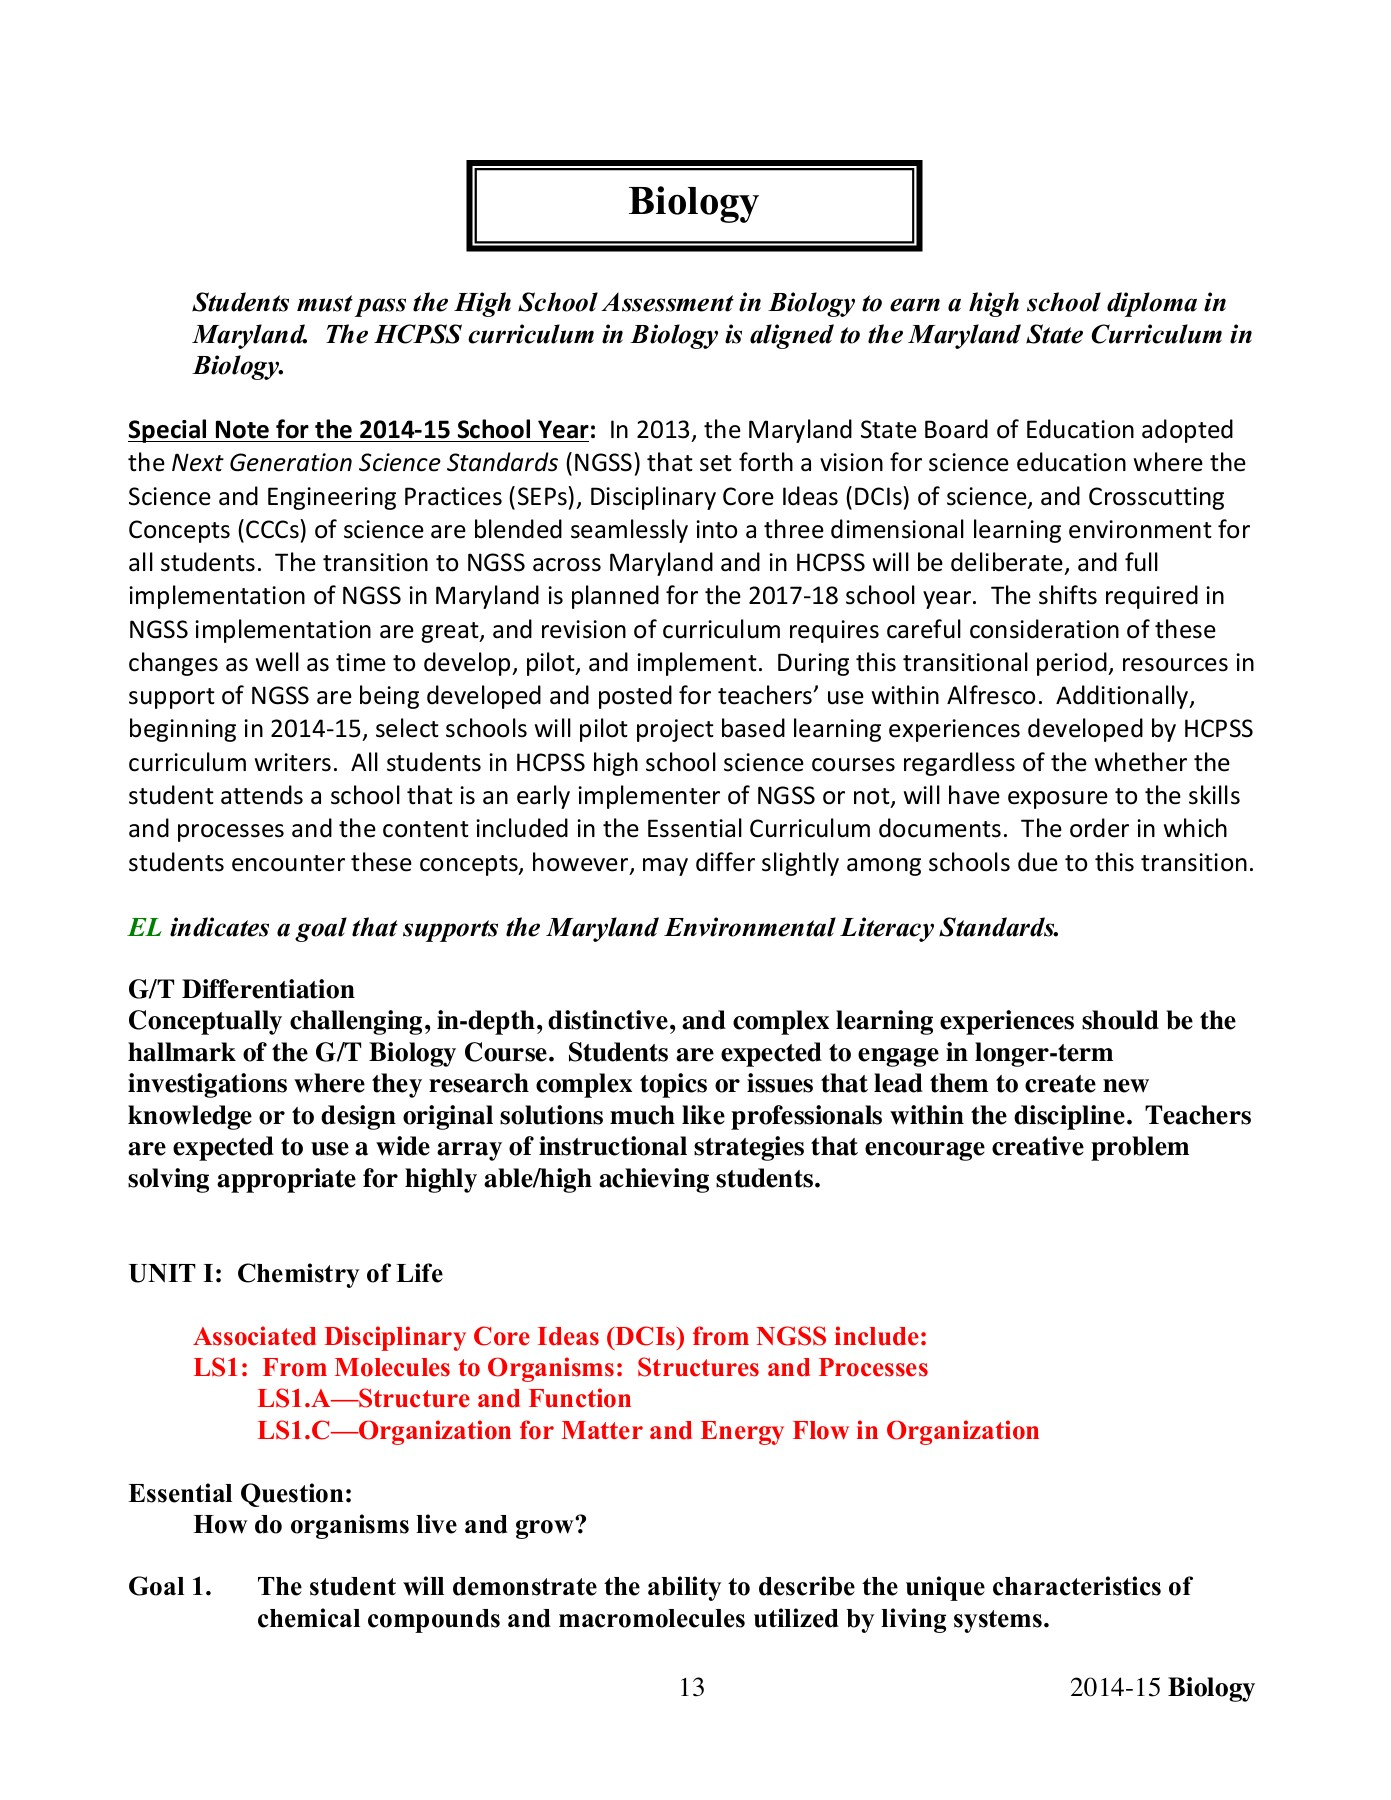 High School Science Essential Curriculum - Biology - Tenth     Pages